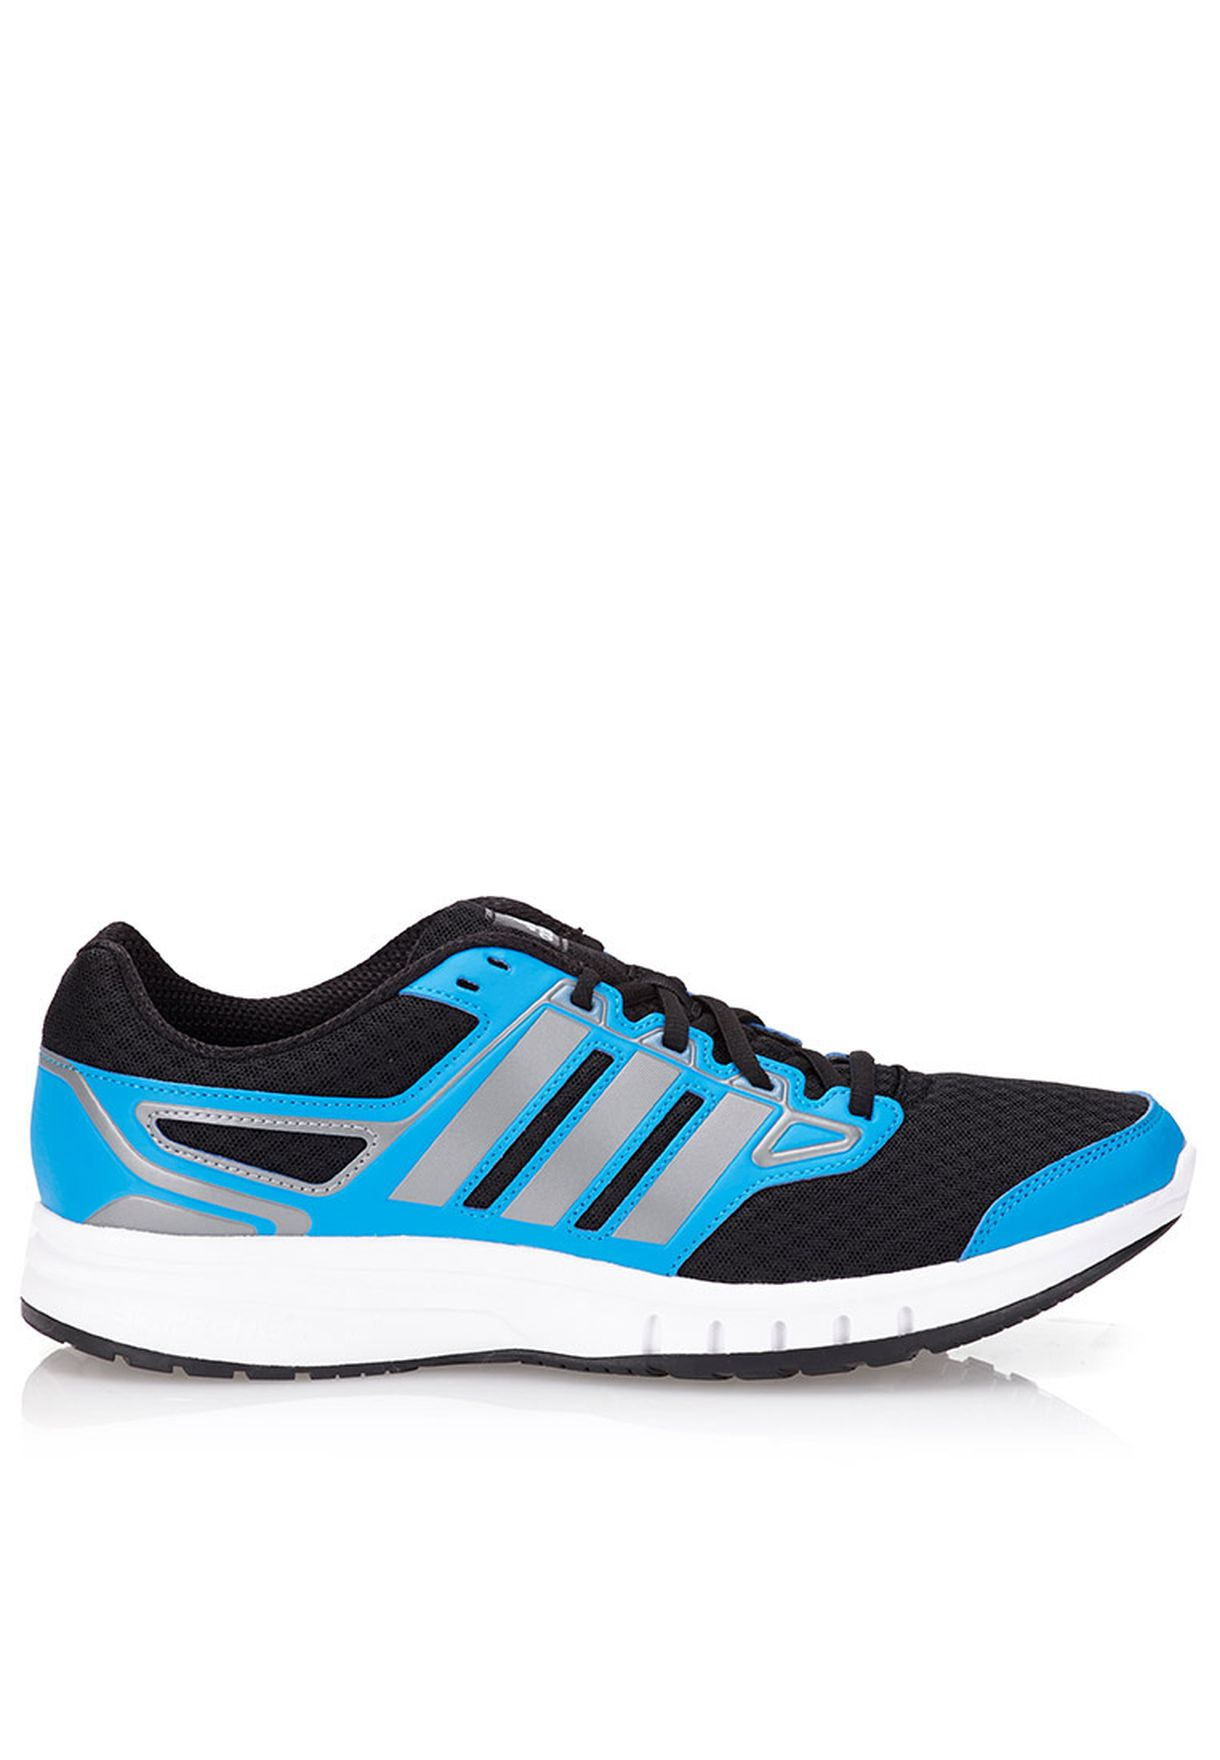 304e48081a0f3 Shop adidas blue Galactic Elite M B40432 for Men in Kuwait - AD476SH52INV